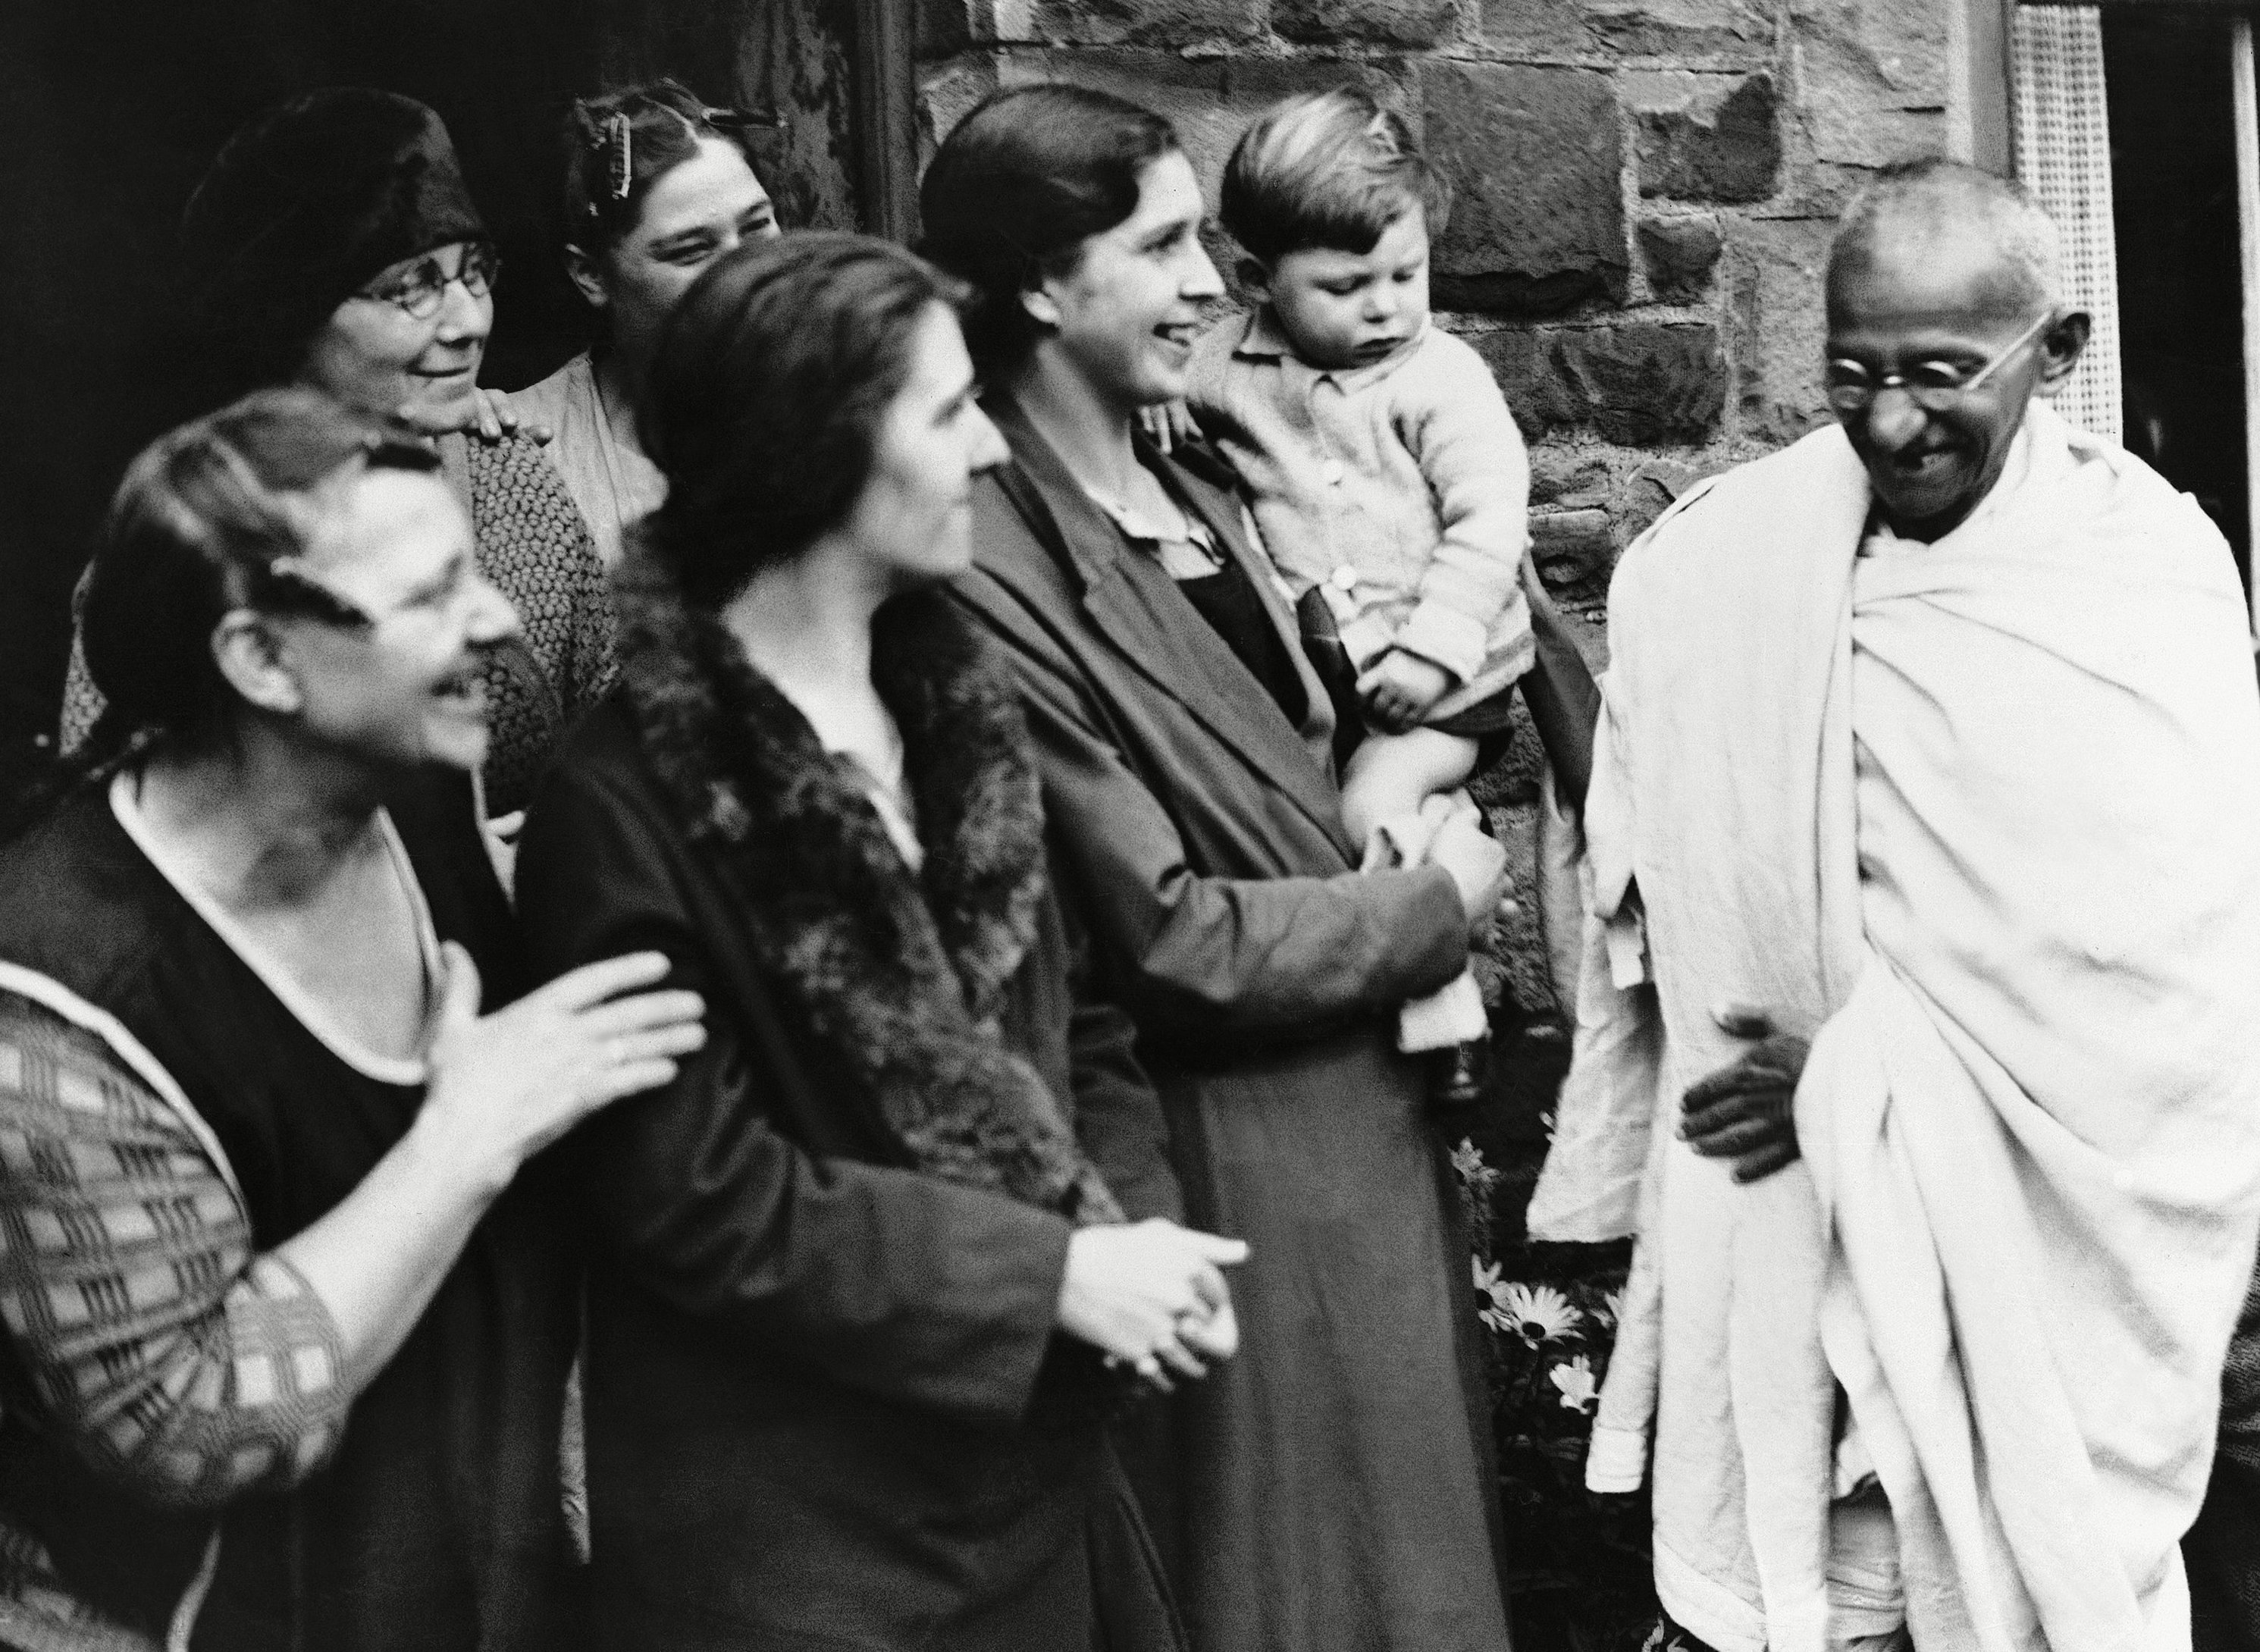 Gandhi visiting the workers in their cottages at Spring Vale, England, during his inspection of the Lancashire Cotton industry's labour conditions